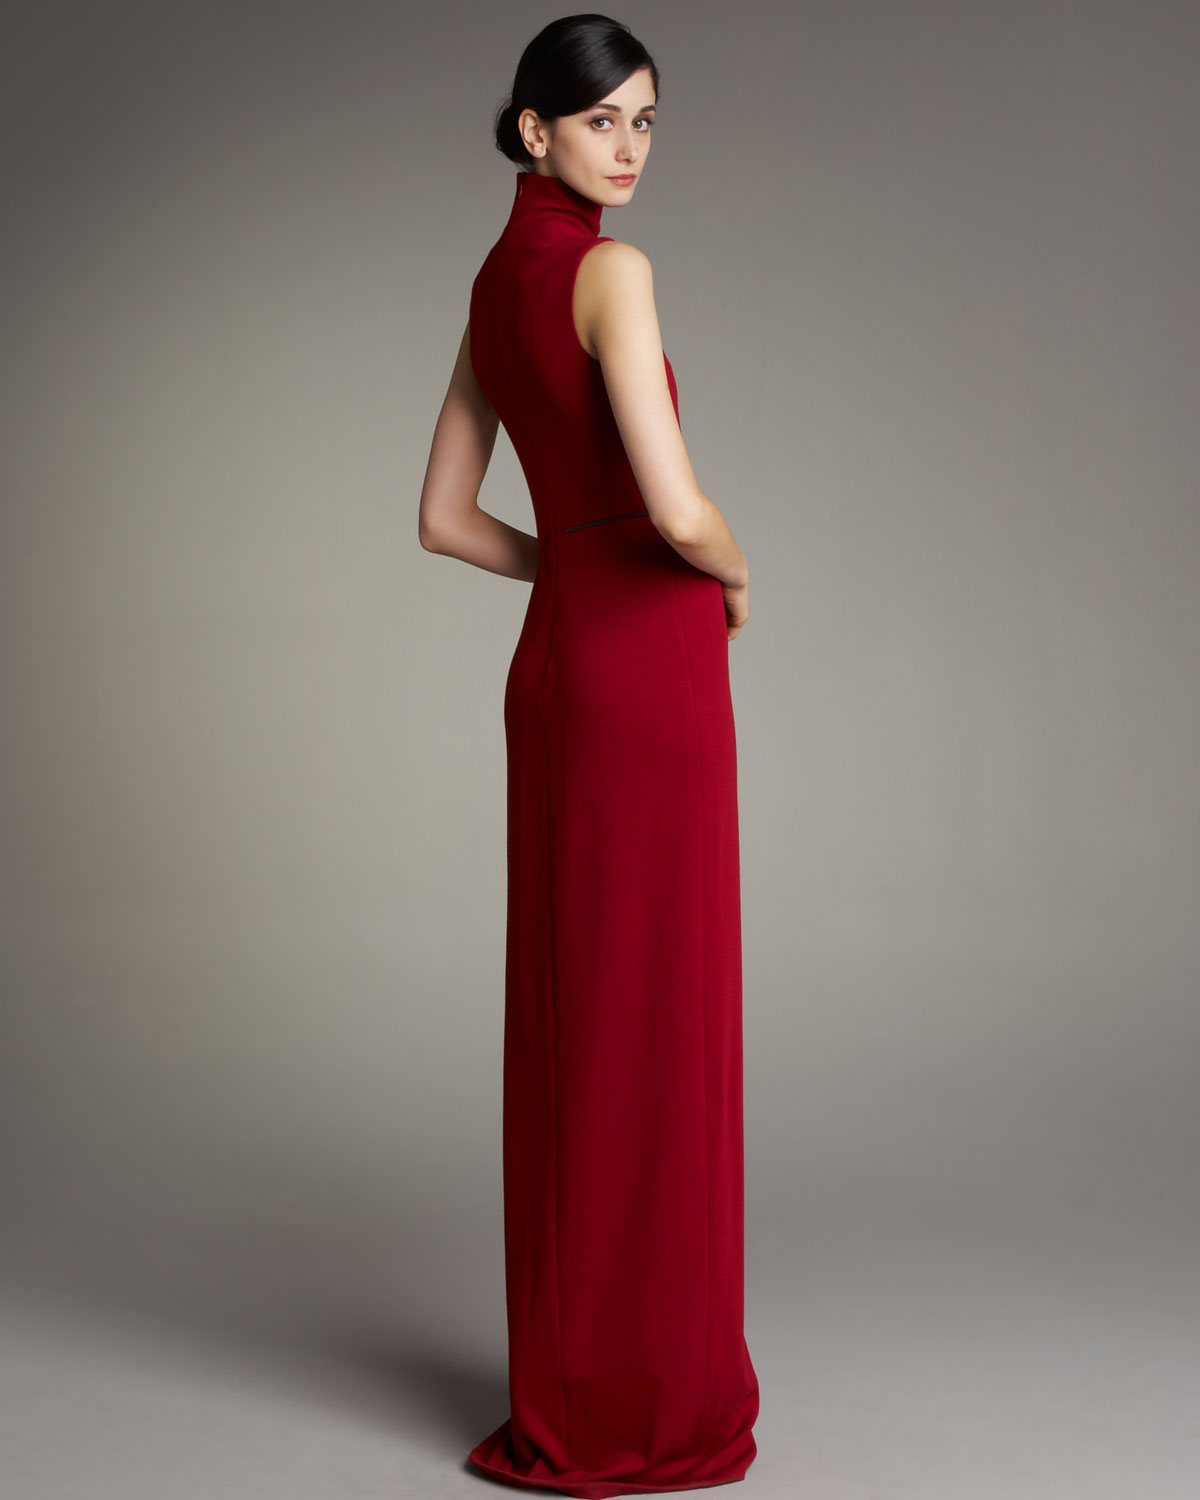 Lyst - Akris Turtleneck Gown in Red